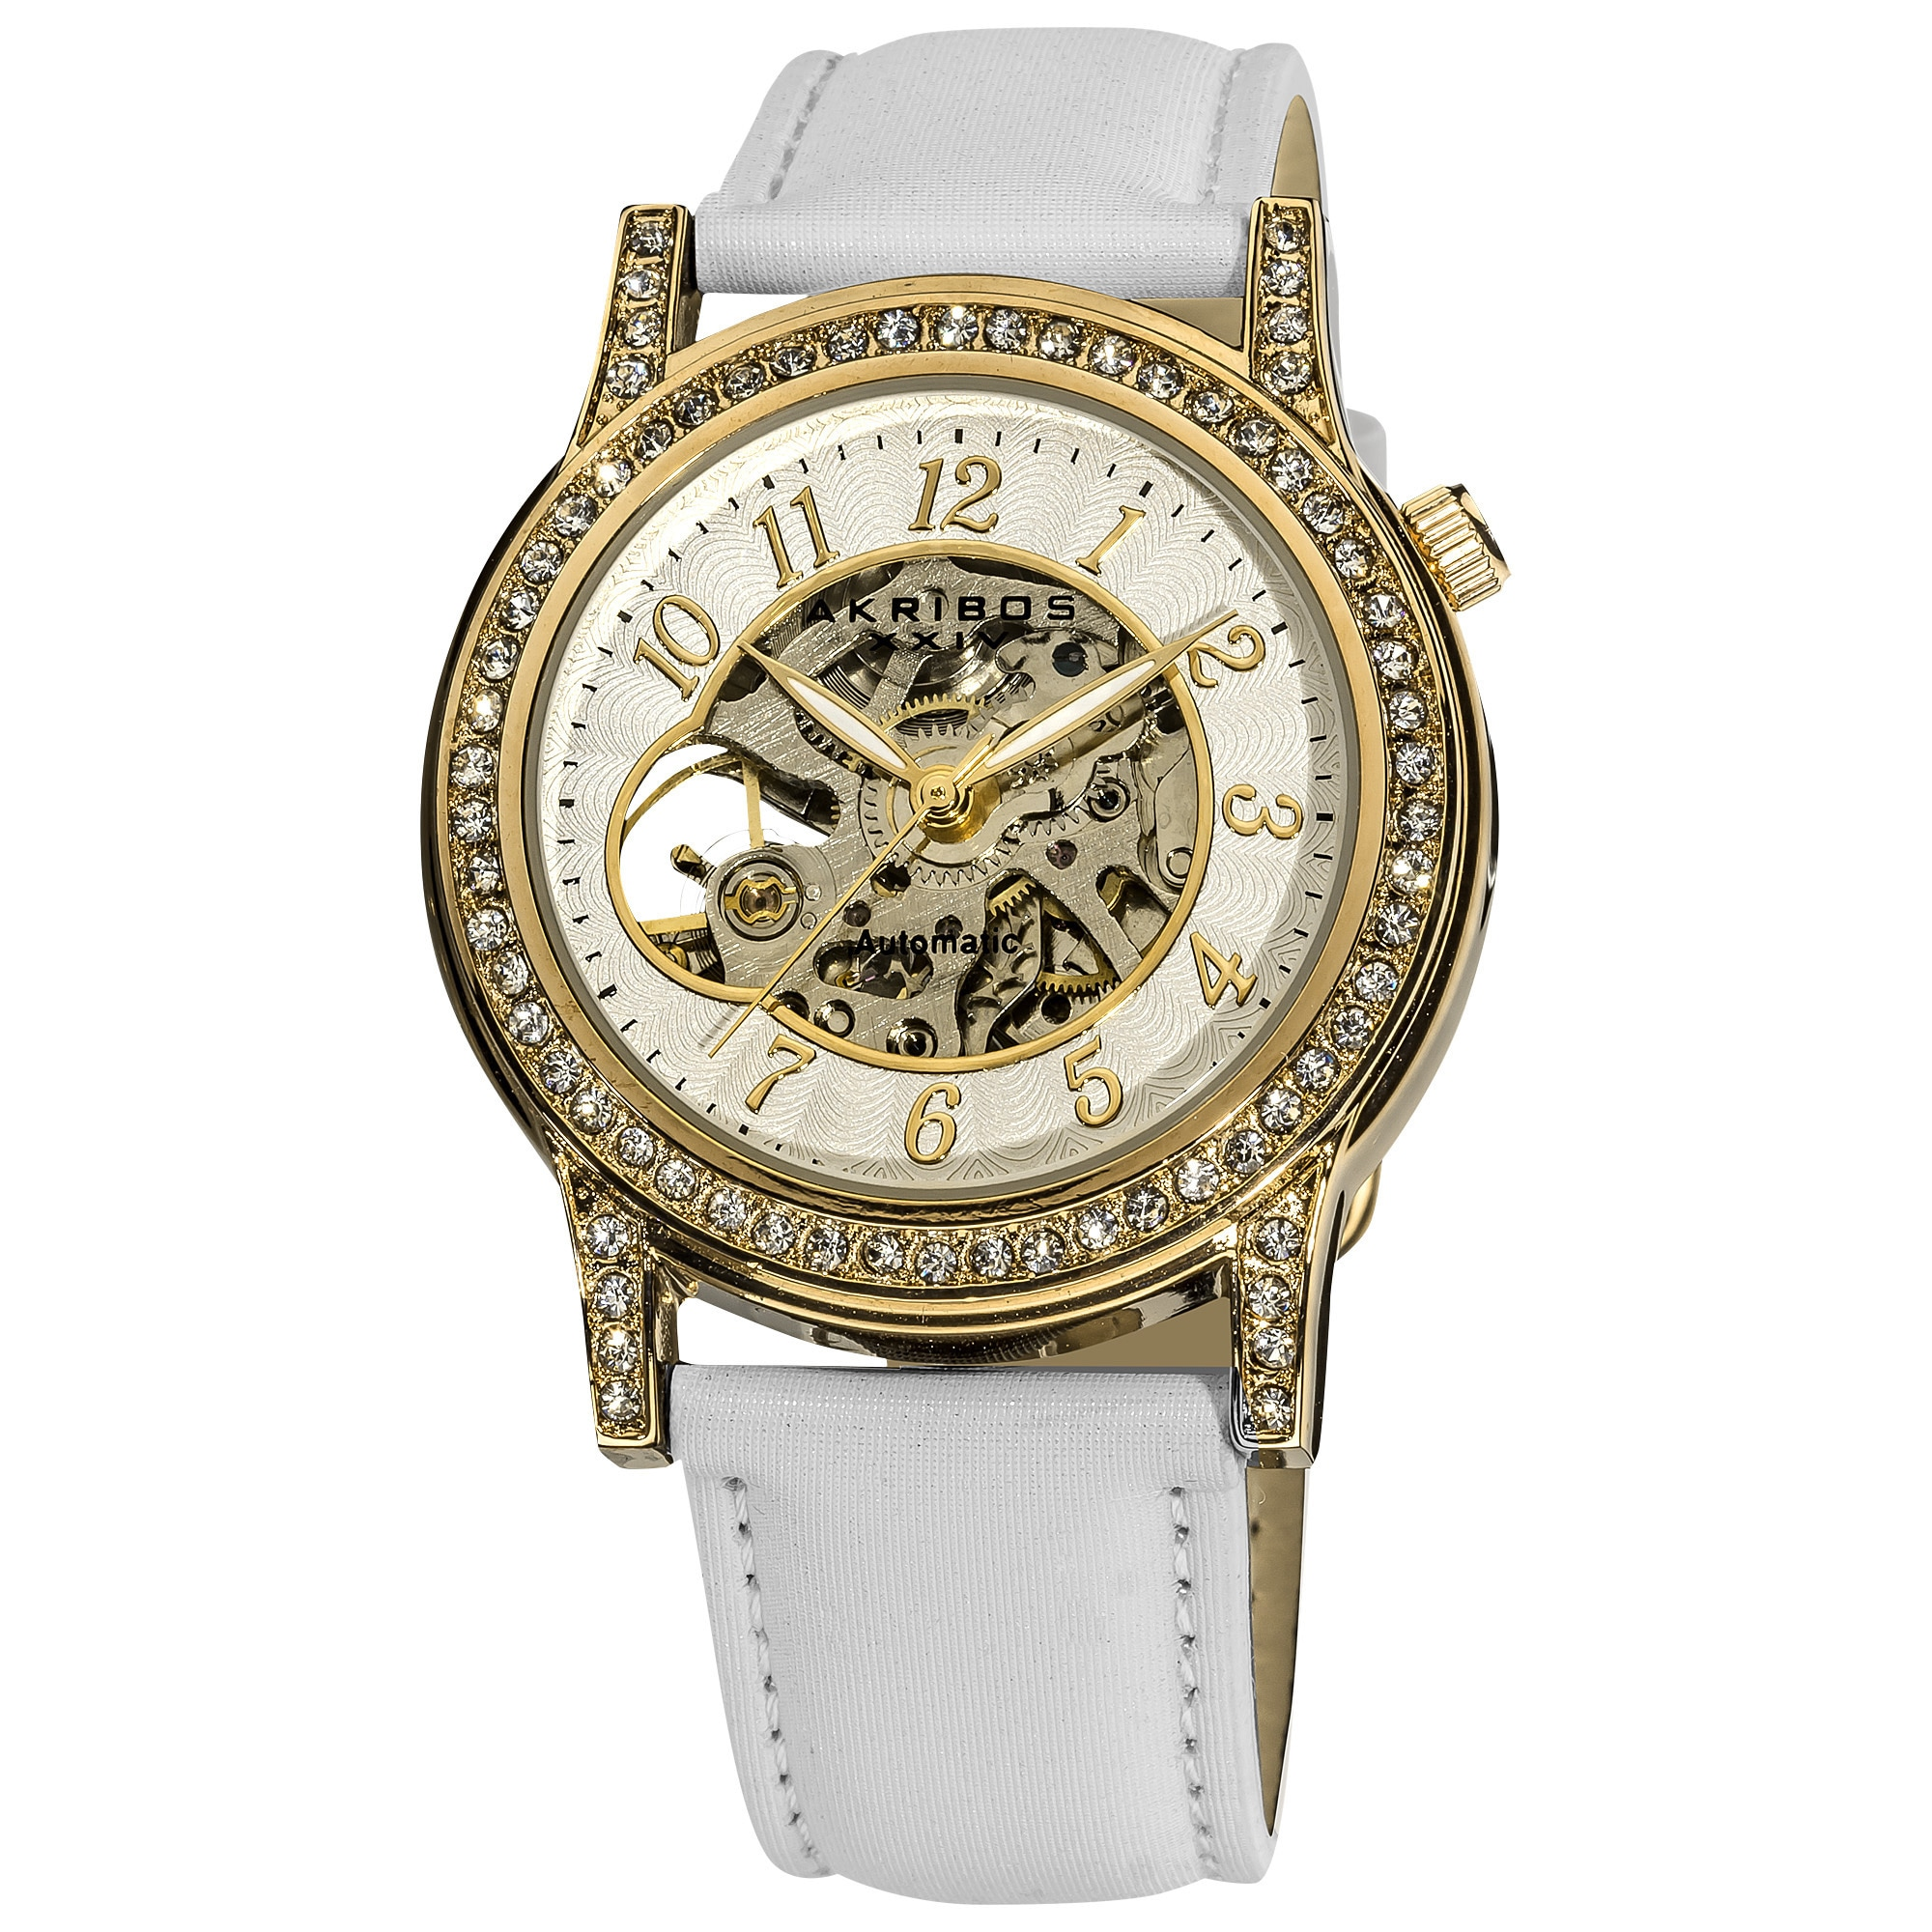 s quartz rose areatrend dress plated stainless us davinci bradshaw men gold kors michael watches watch steel mens